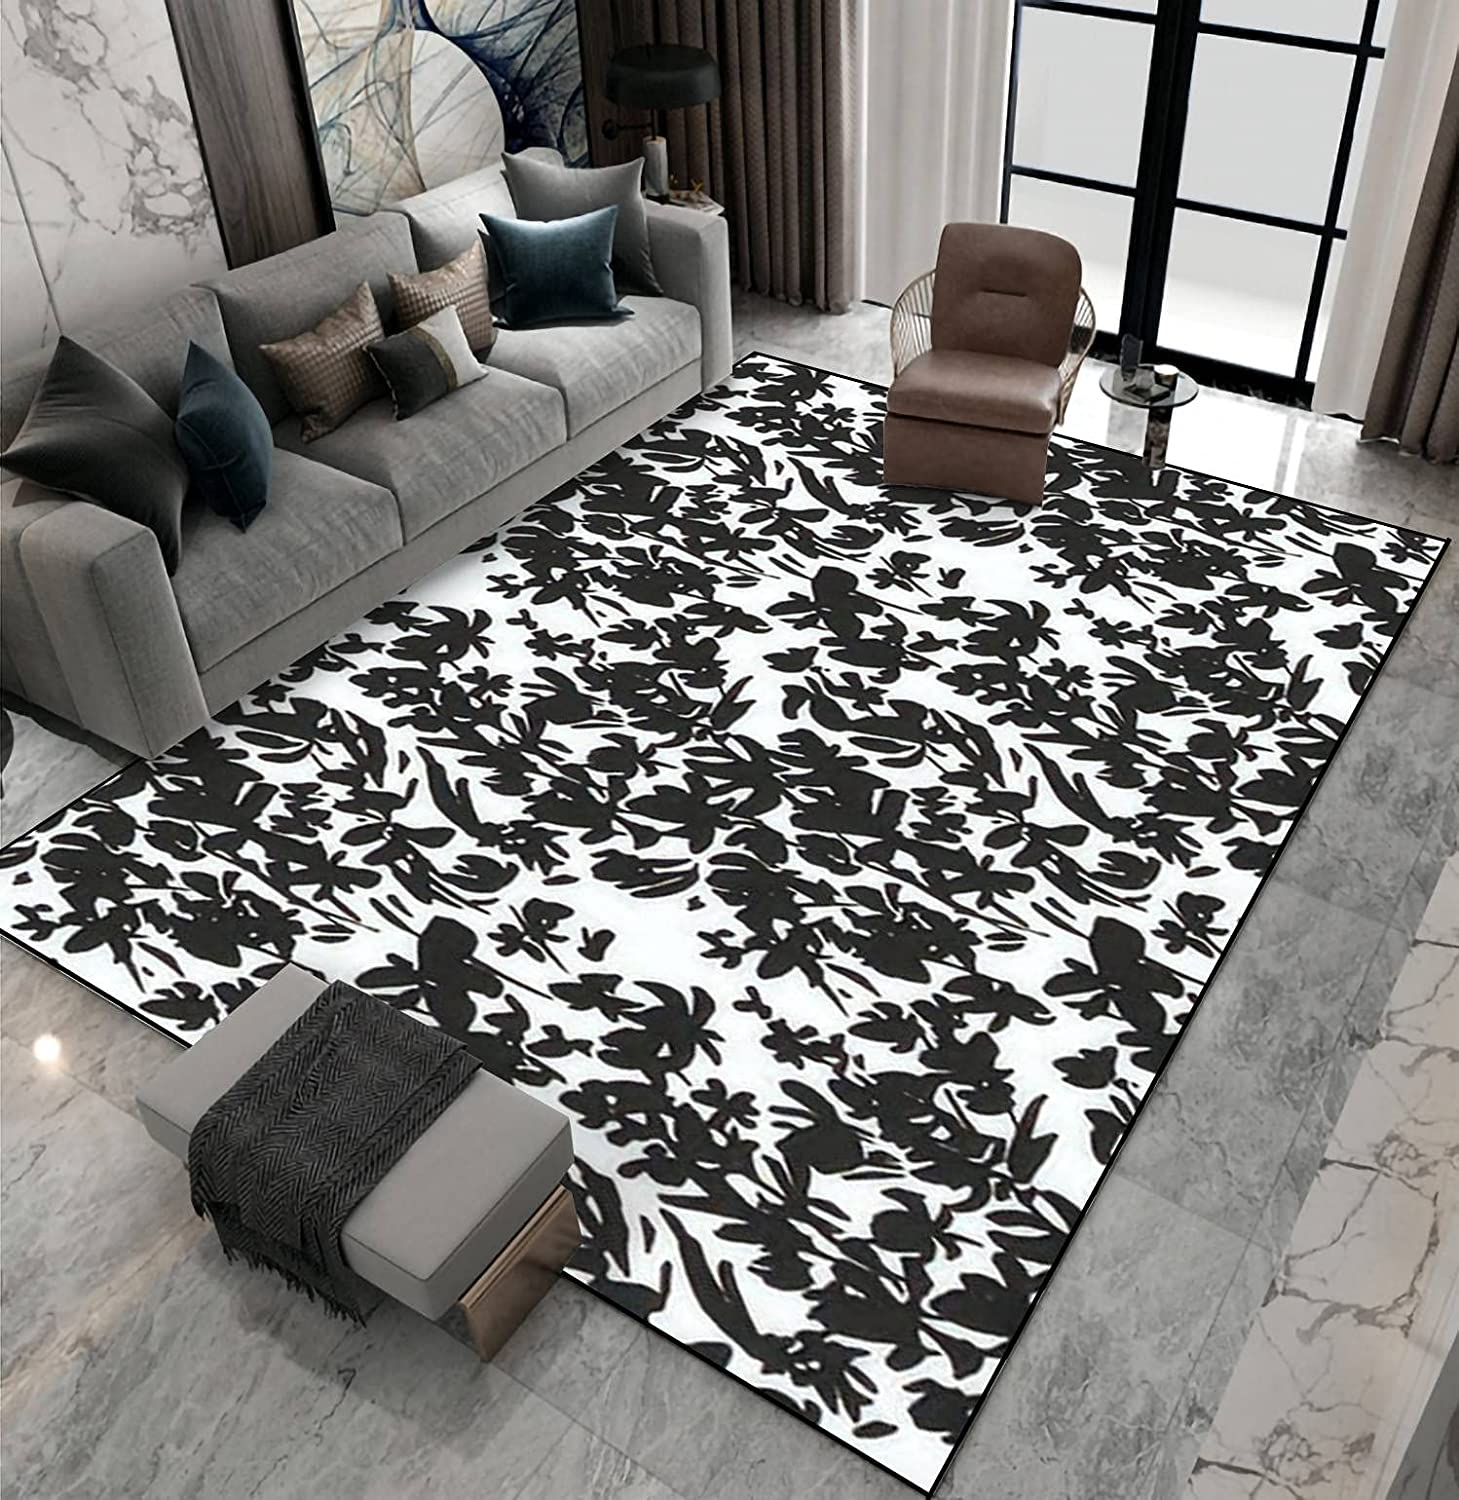 Area Rug Non-Slip Floor Mat Flower Monochrome Clearance SALE! Limited time! Max 71% OFF Silho Shabby Vibes